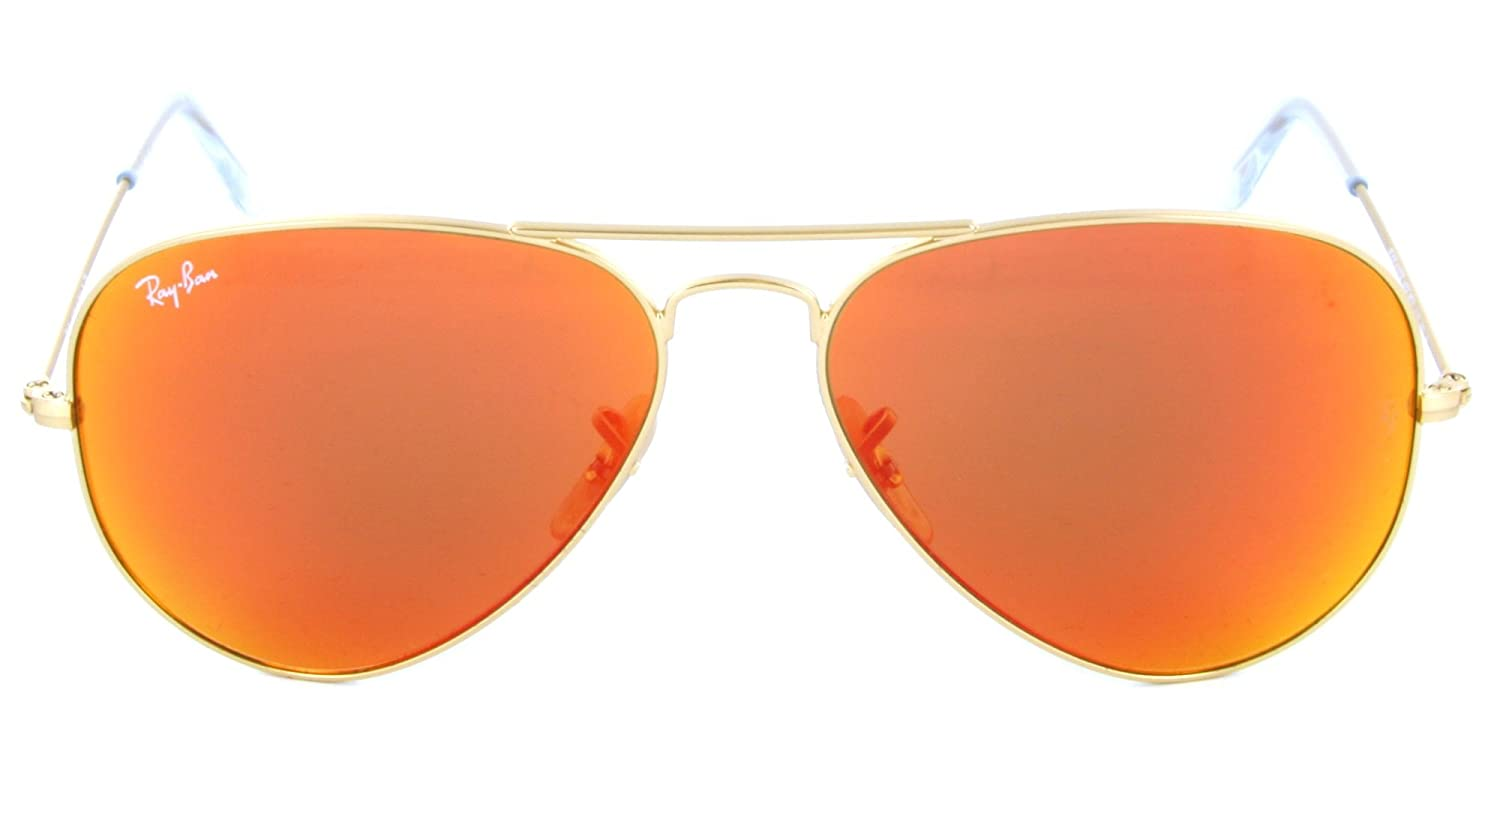 0a271257c3 Amazon.com  Ray Ban 3025 Aviator RB 3025 112 69 58mm Matte Gold Frame w   Brown Mirror Orange  Shoes